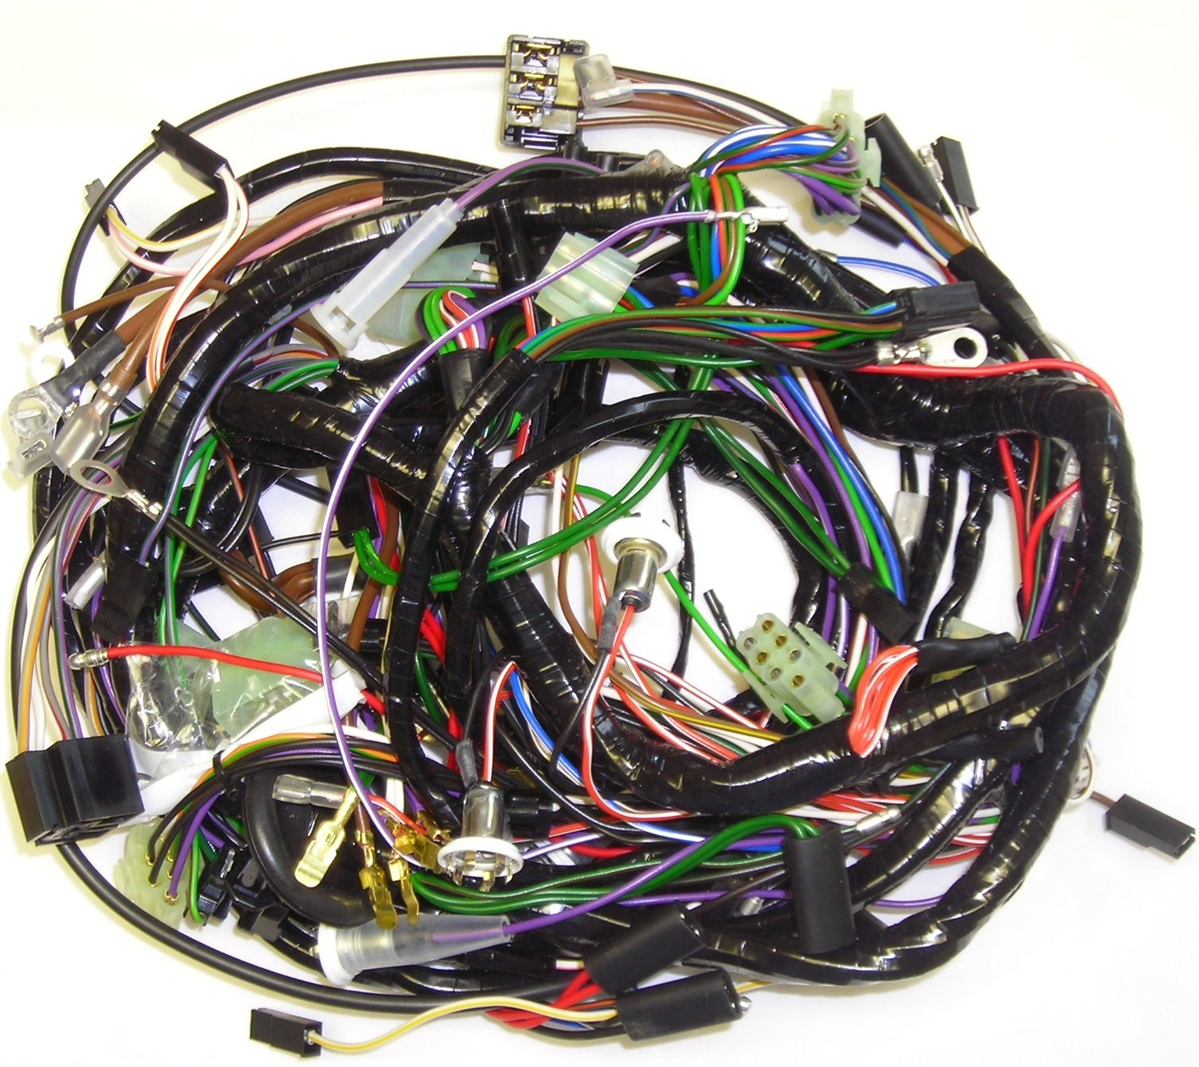 1531 2?1354102943 spitfire1500 main wiring harness Wiring Harness Diagram at bakdesigns.co